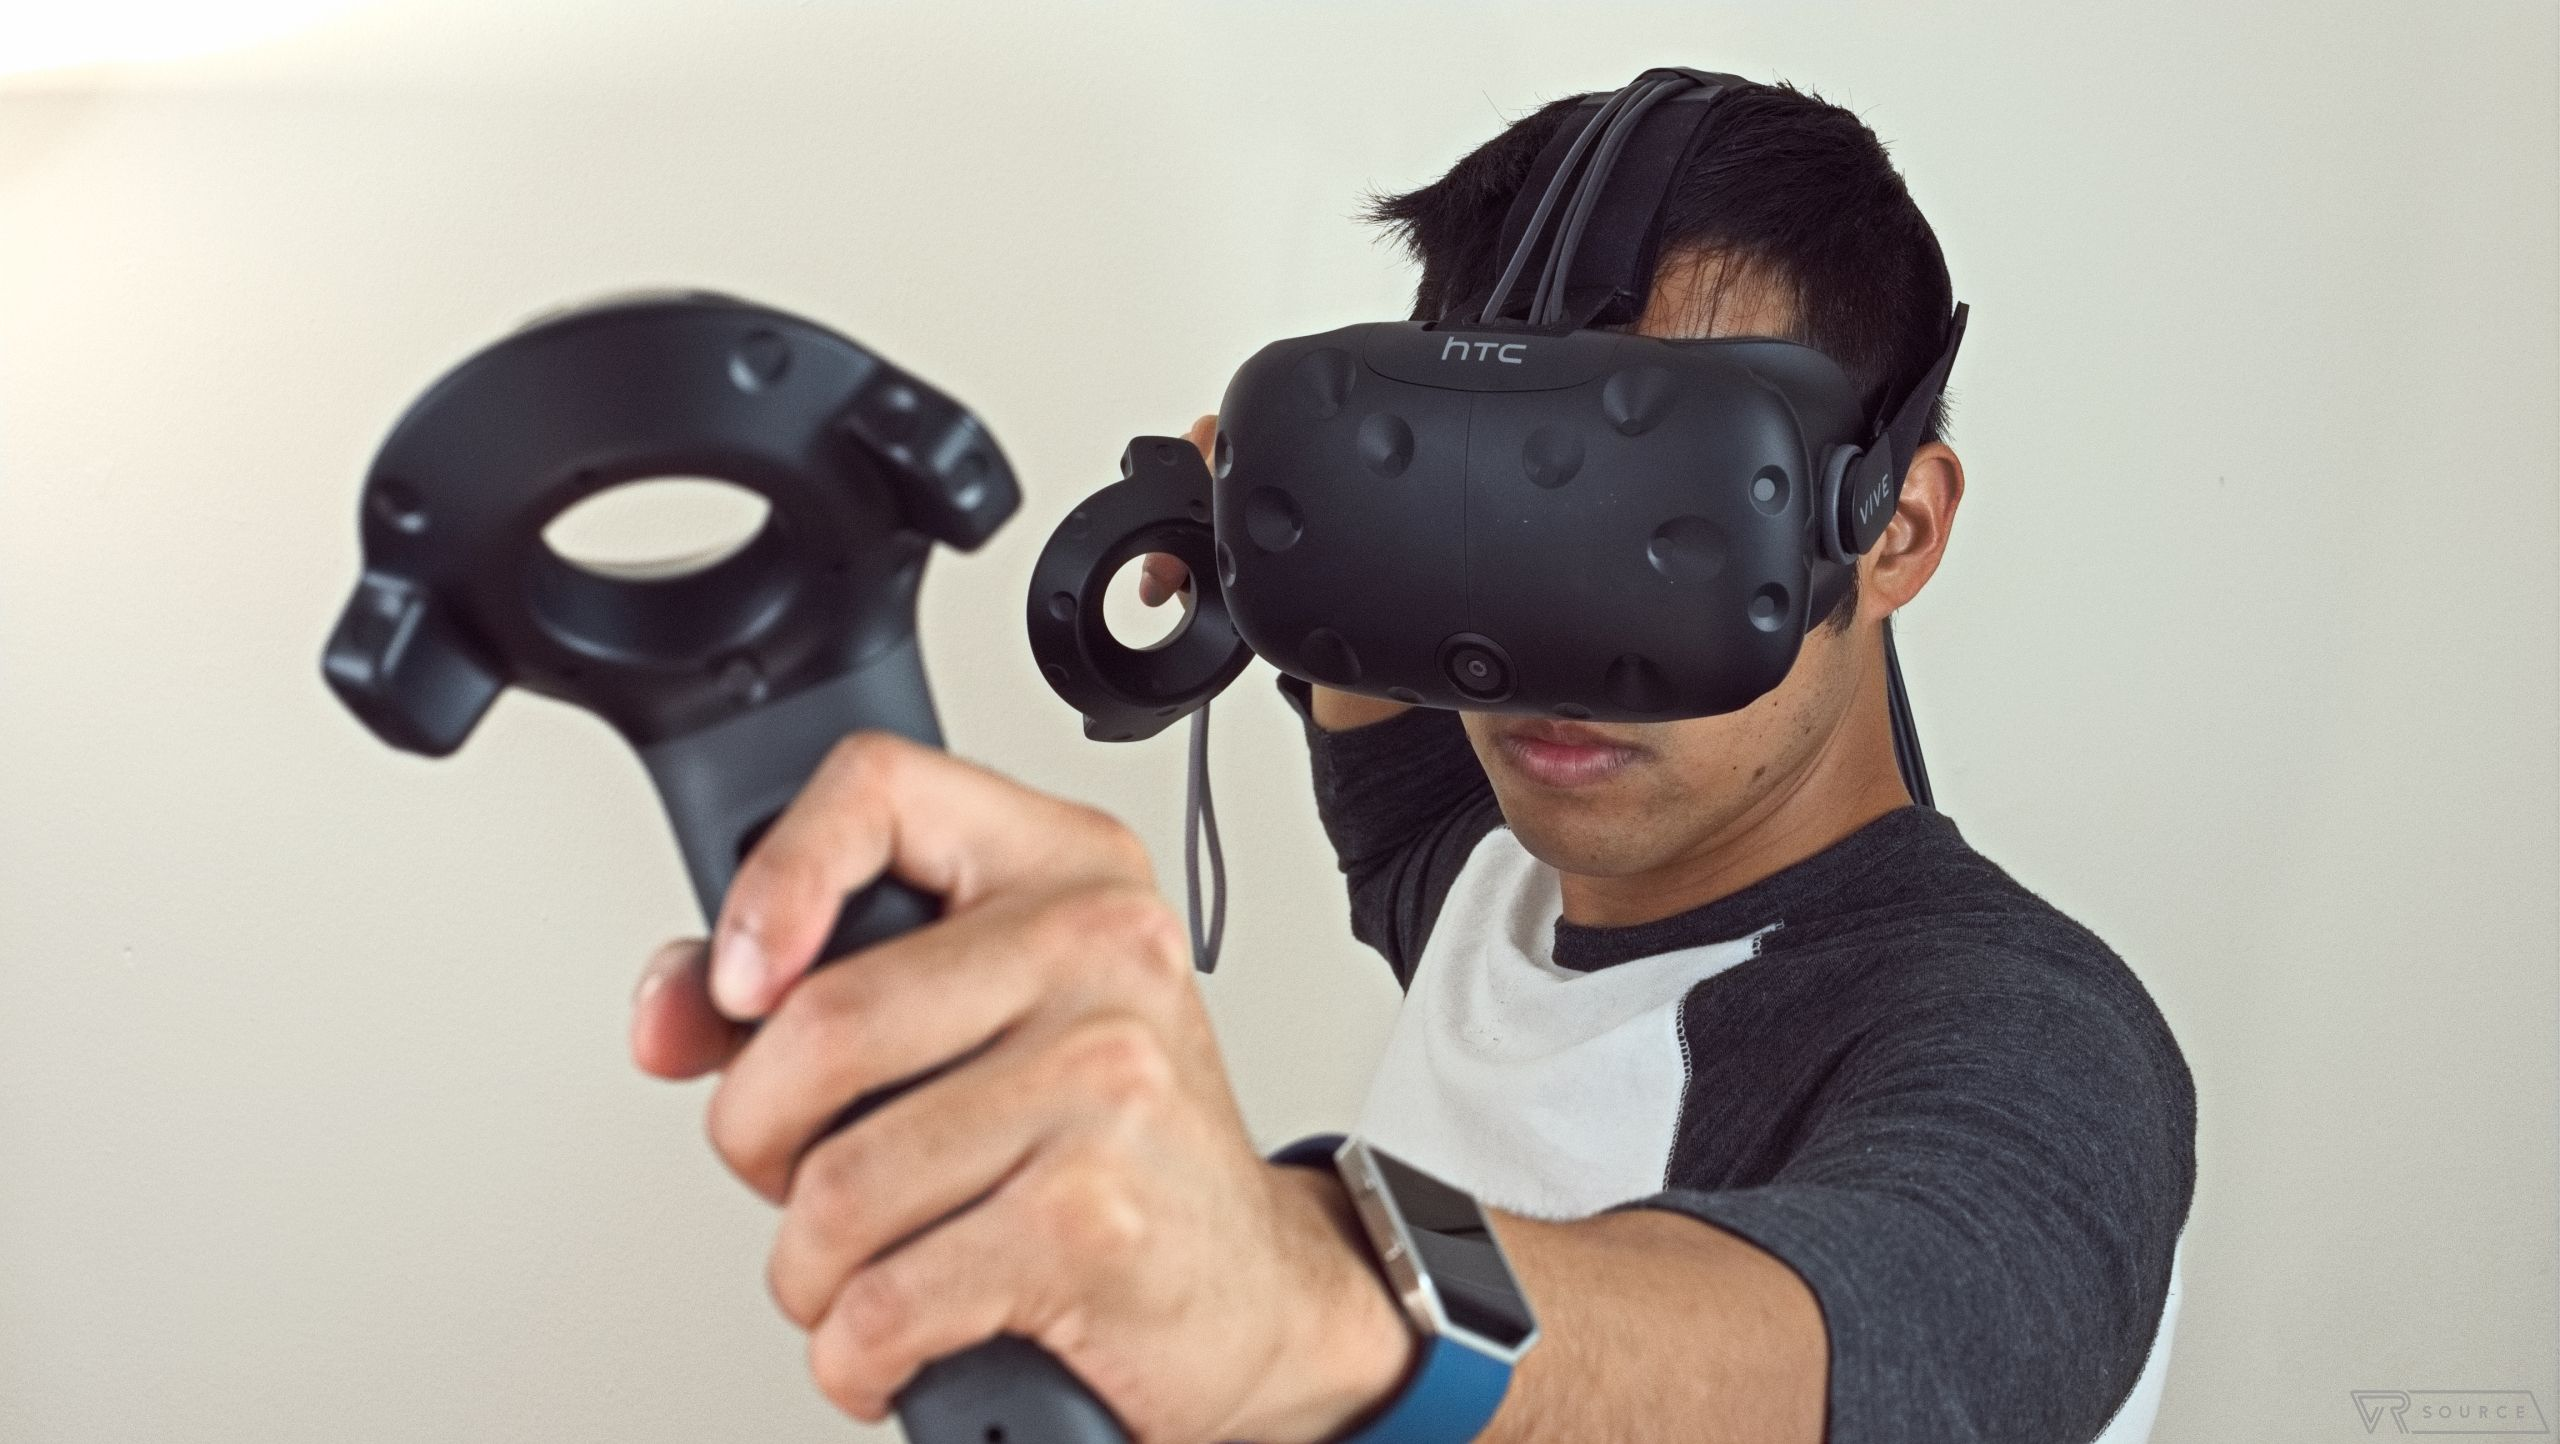 Permanent price cut for HTC Vive